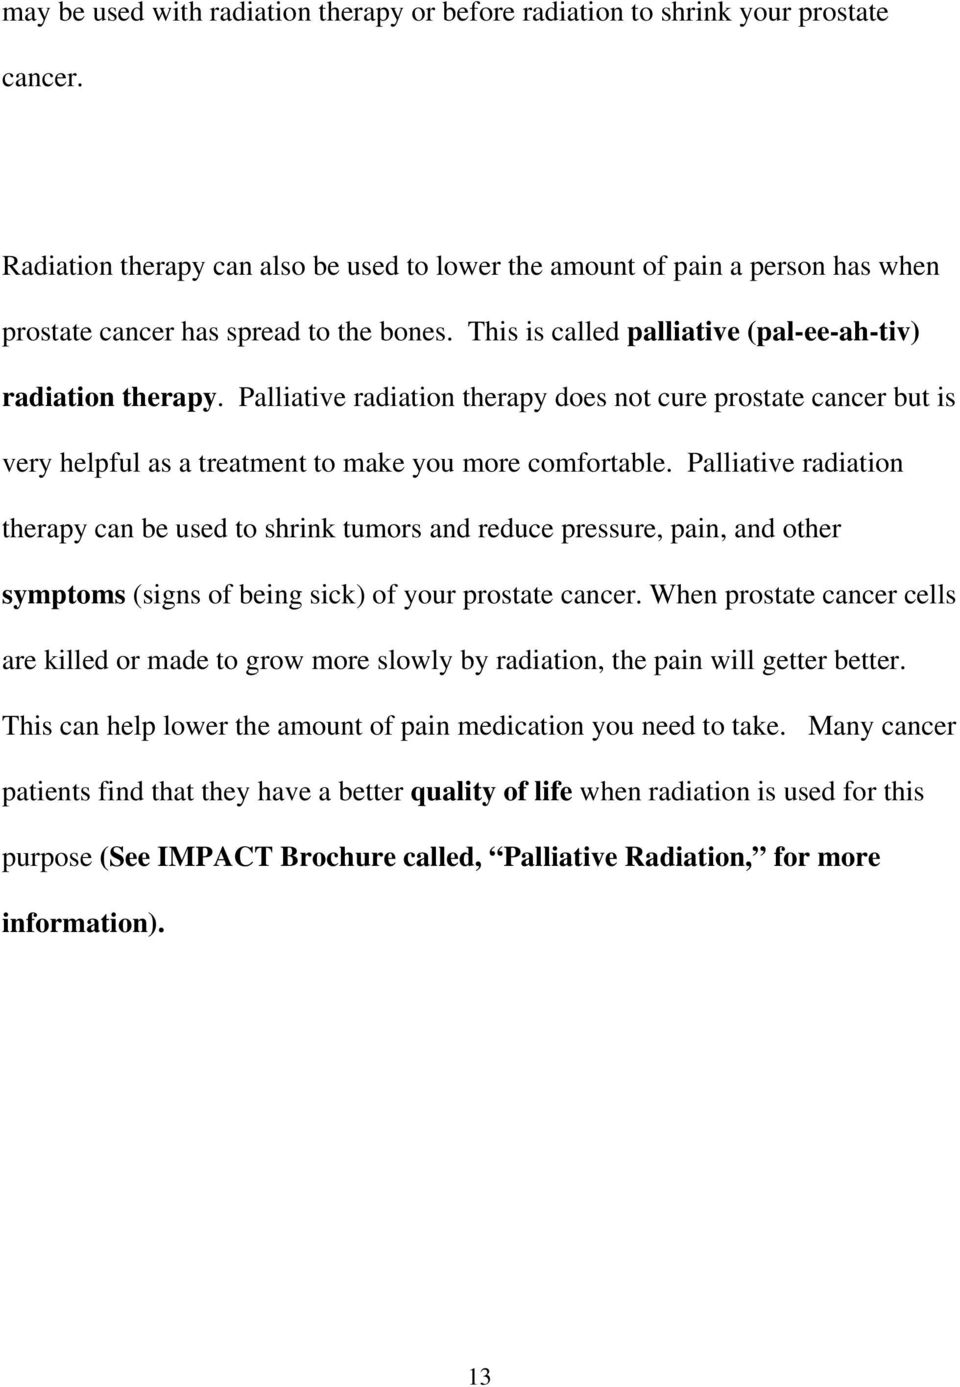 Palliative radiation therapy does not cure prostate cancer but is very helpful as a treatment to make you more comfortable.